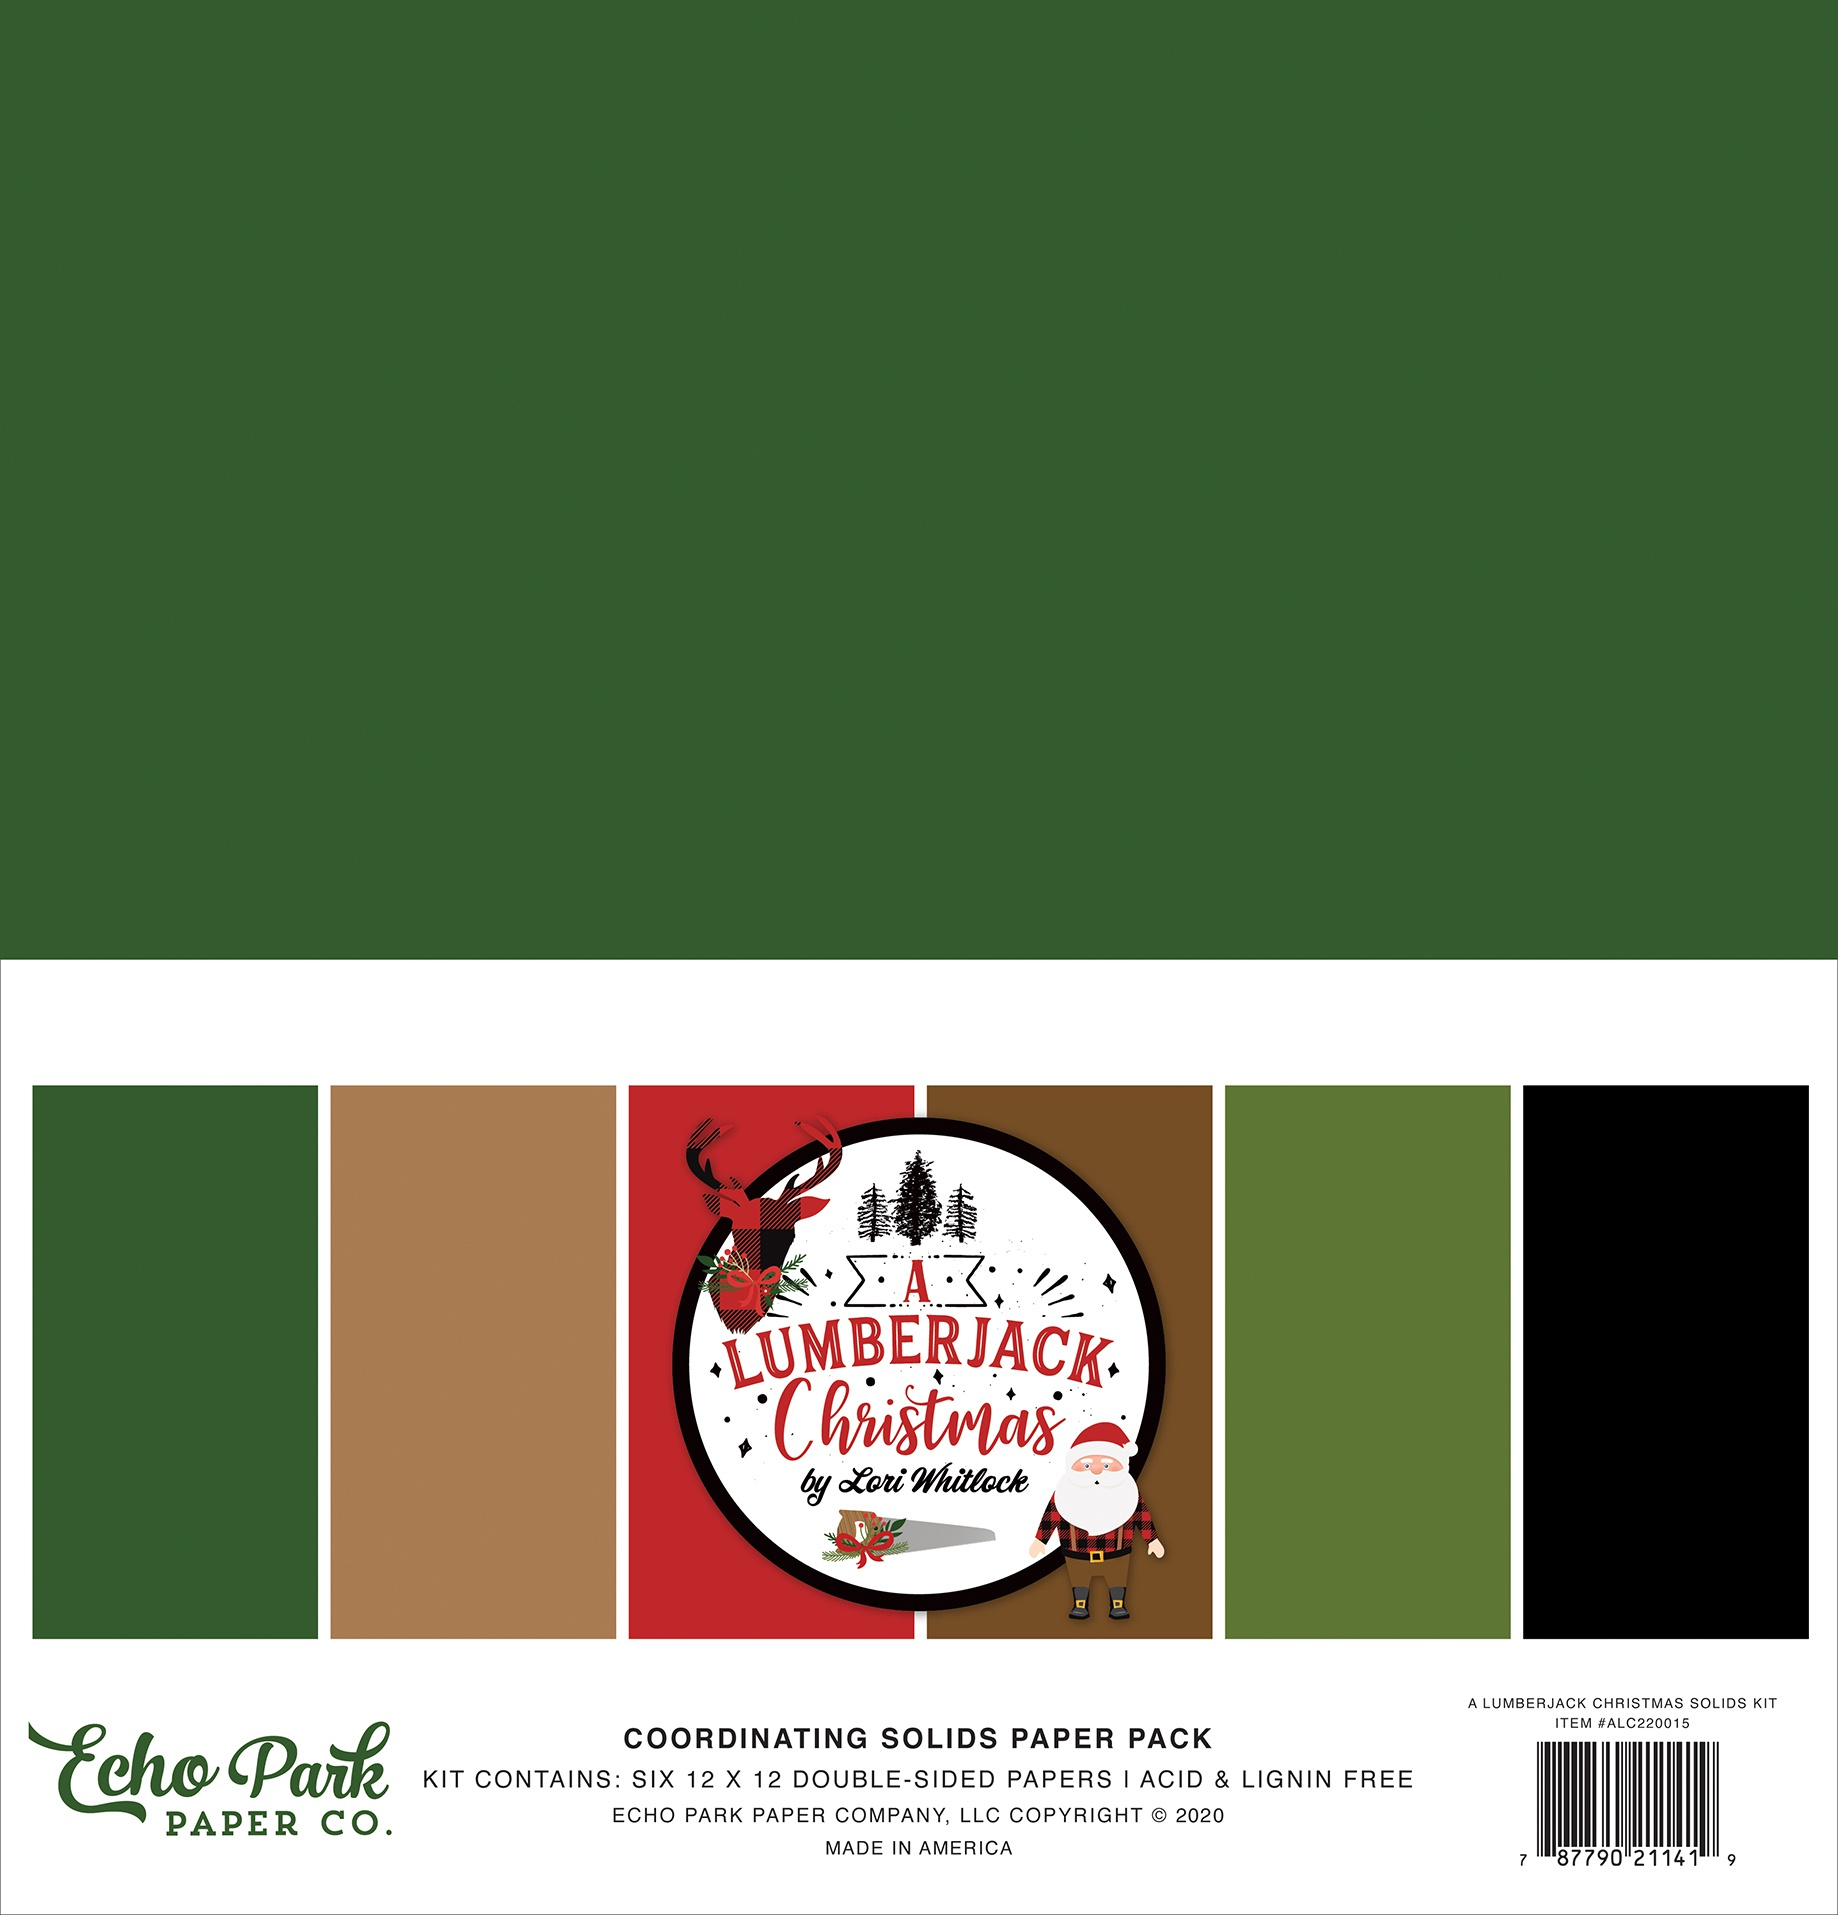 Echo Park A Lumberjack Christmas - 12x12 Coordinating Solids Paper Pack